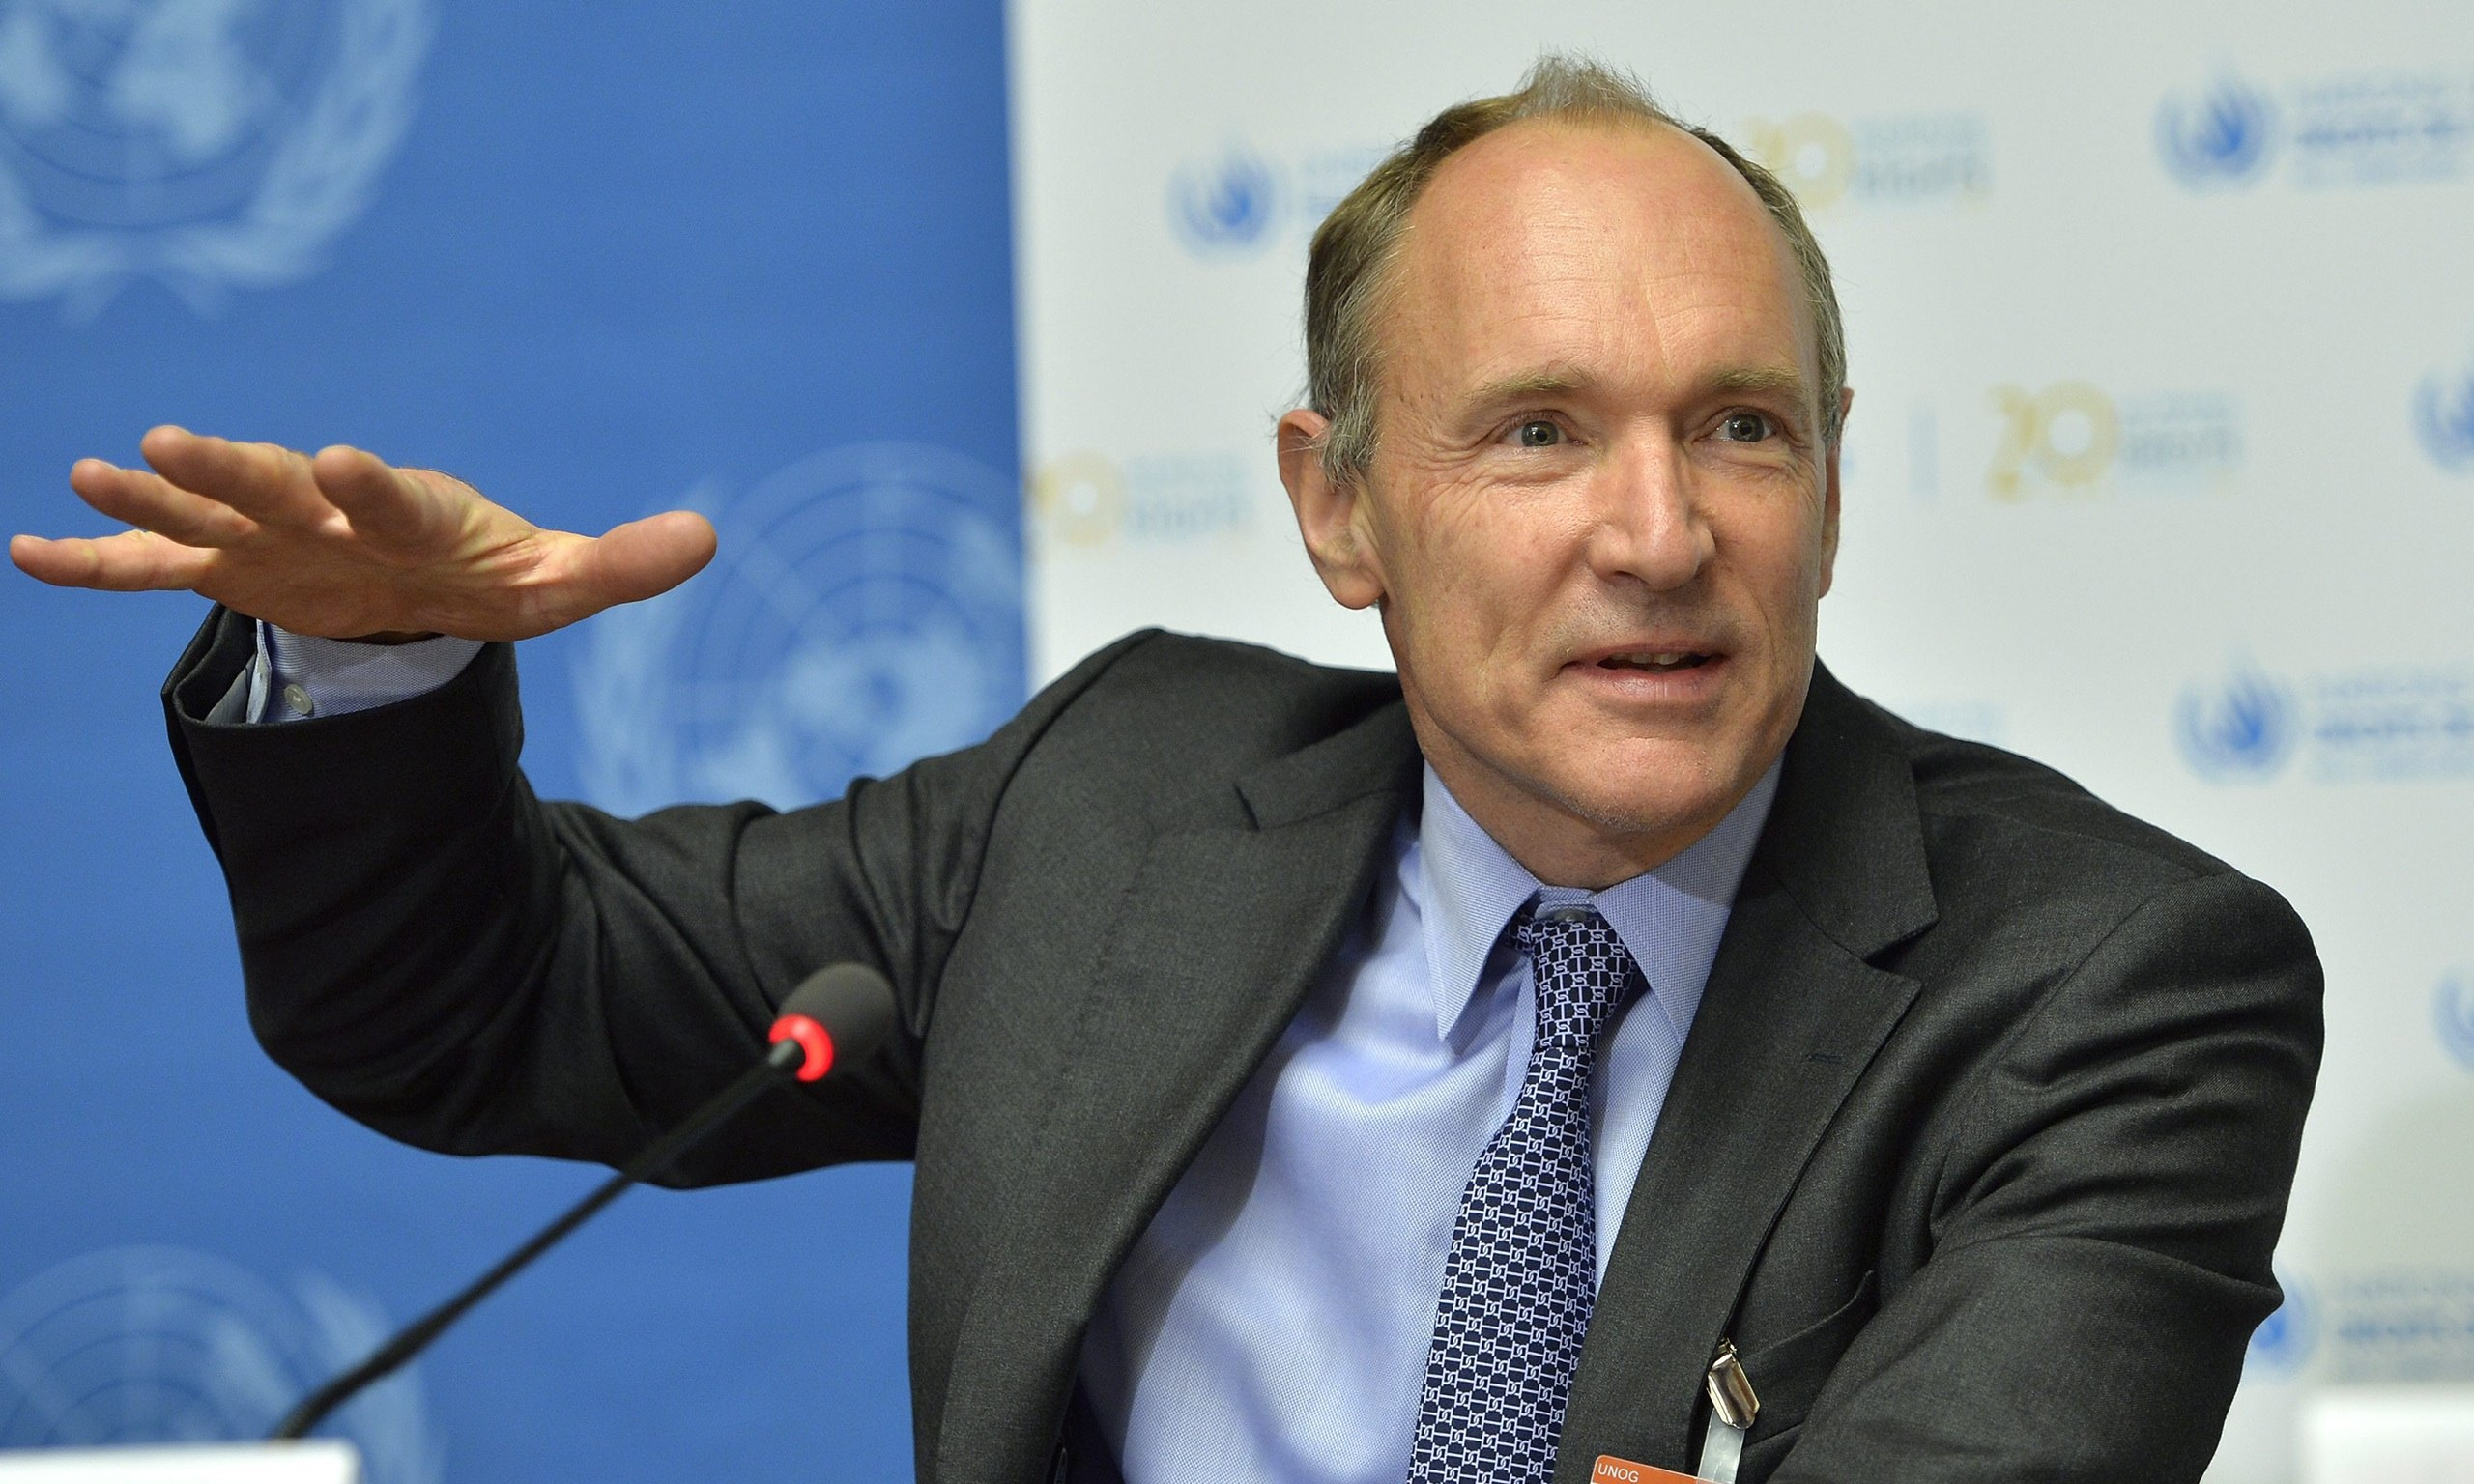 tim berners lee short bio Tim berners-lee (short bio) essay  tim berners lee biography: _tim berners lee was born on 8th june 1955 in south east london, england he's the son of conway burners lee and mary lee.